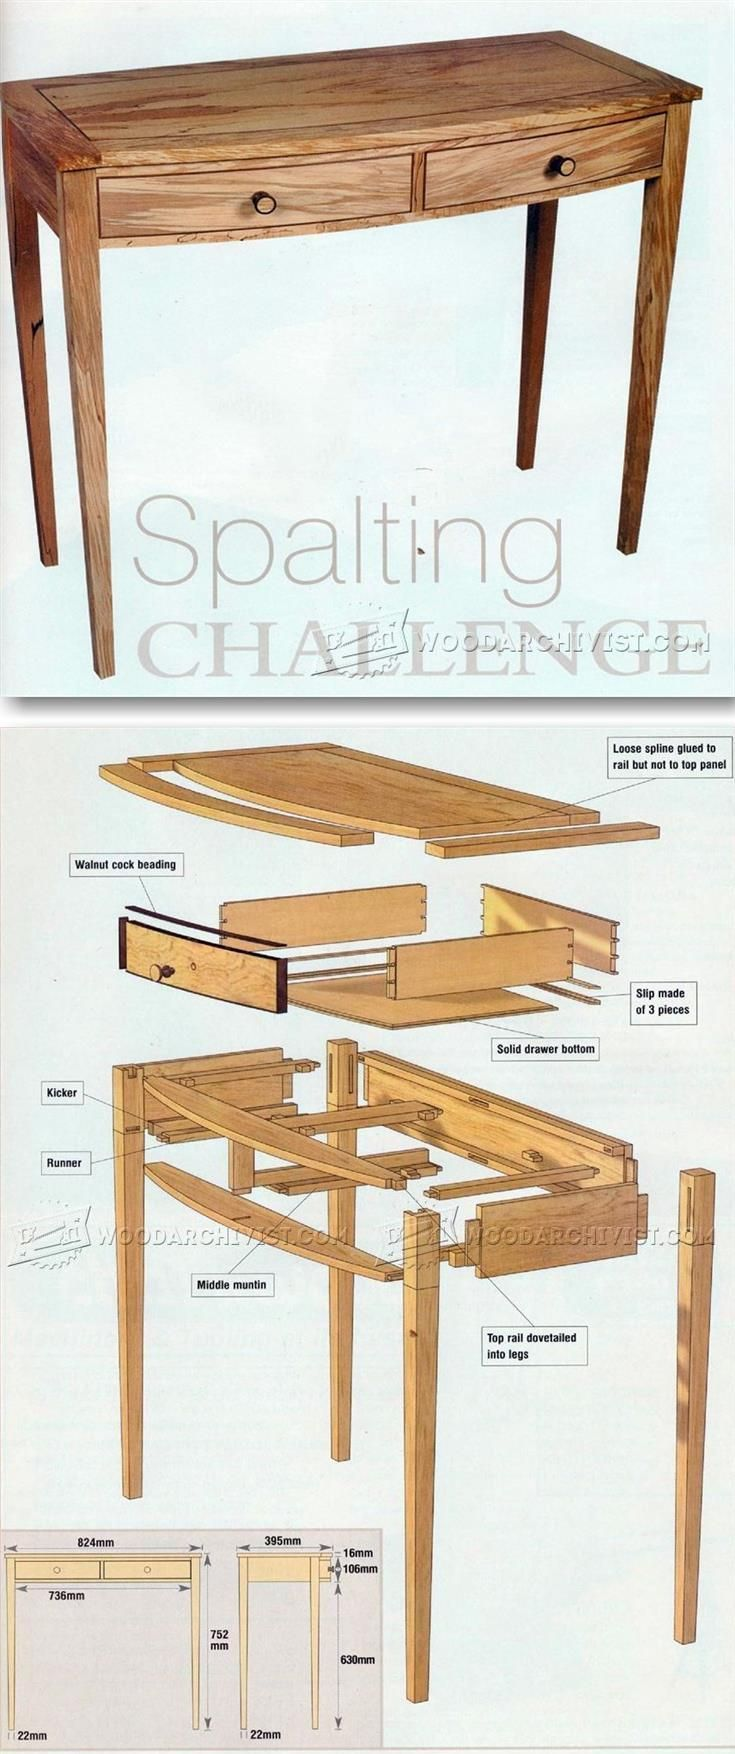 Side Table Plan Furniture Plans And Projects Http Woodarchivist Com Woodworking Furniture Plans Woodworking Designs Woodworking Plans